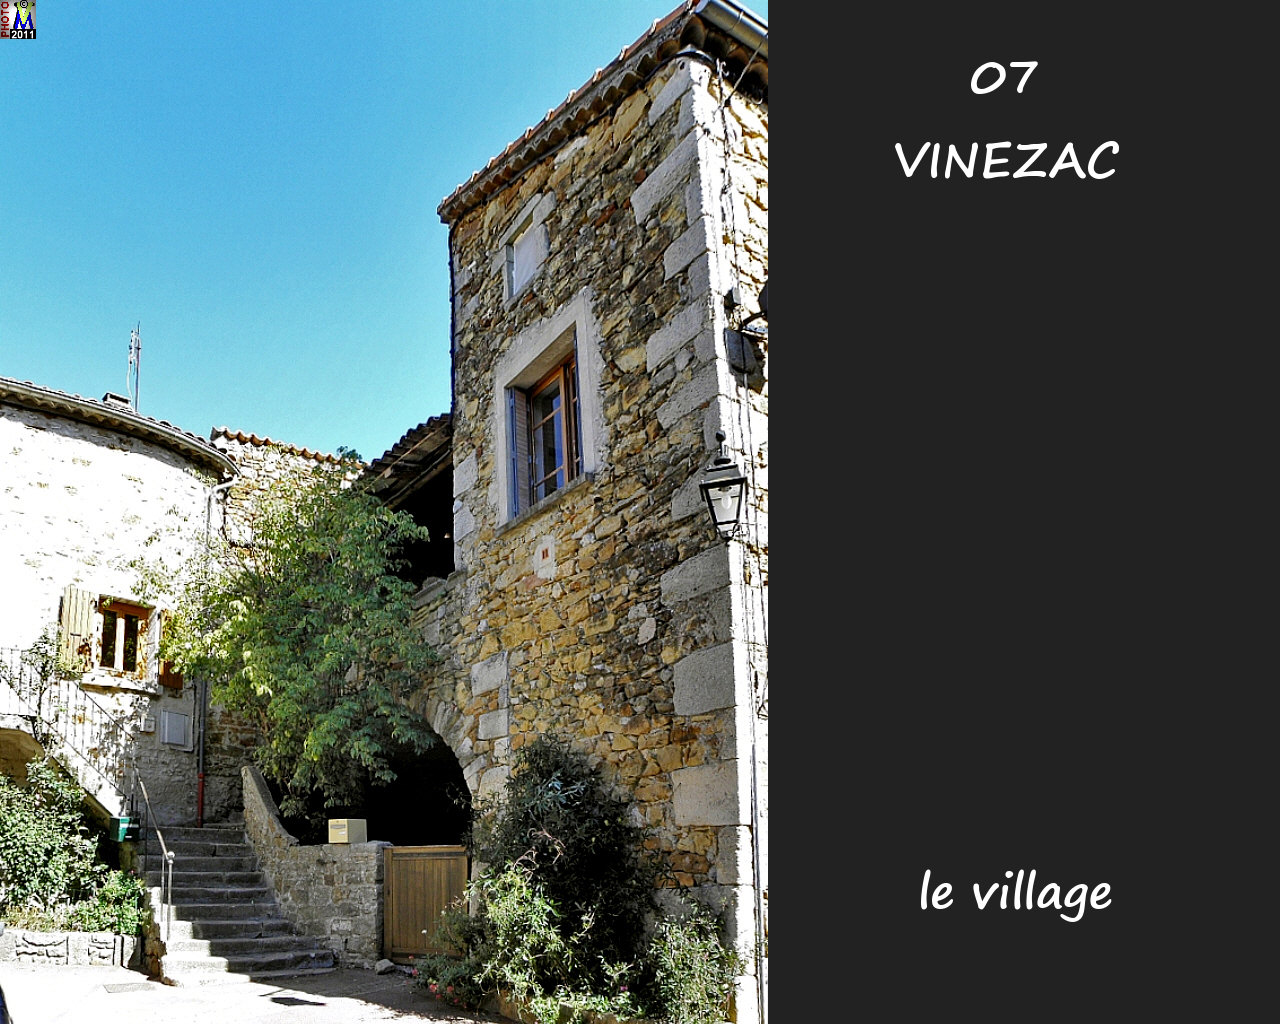 07VINEZAC_village_146.jpg